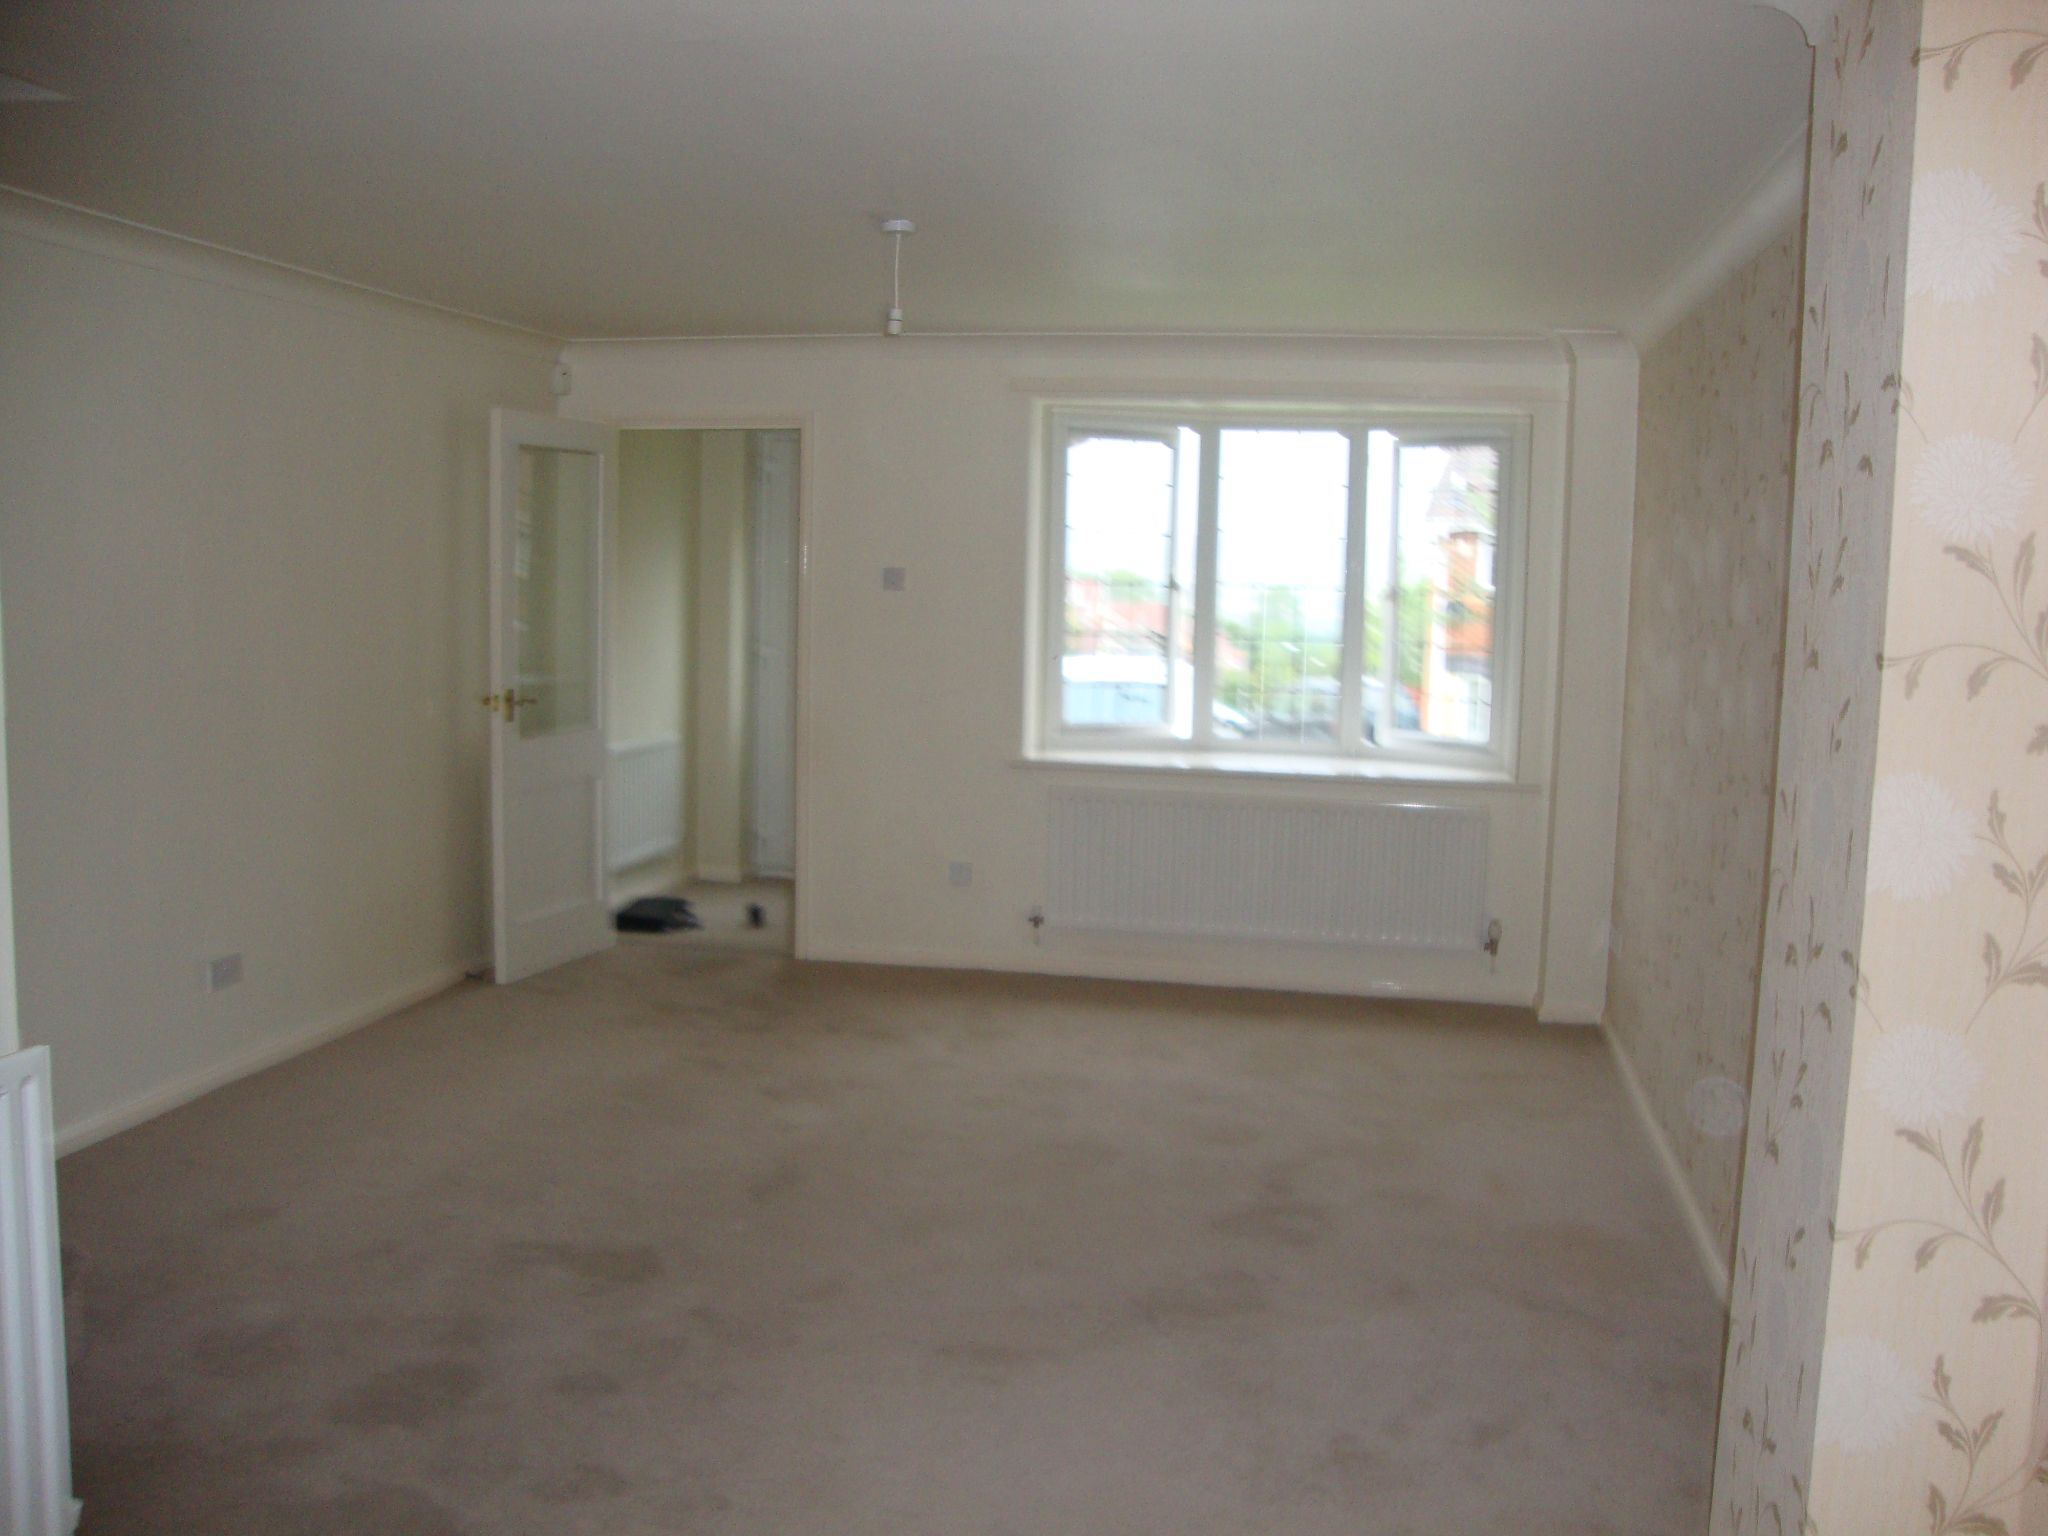 4 bedroom detached house For Sale in Durham - Lounge/Dining.